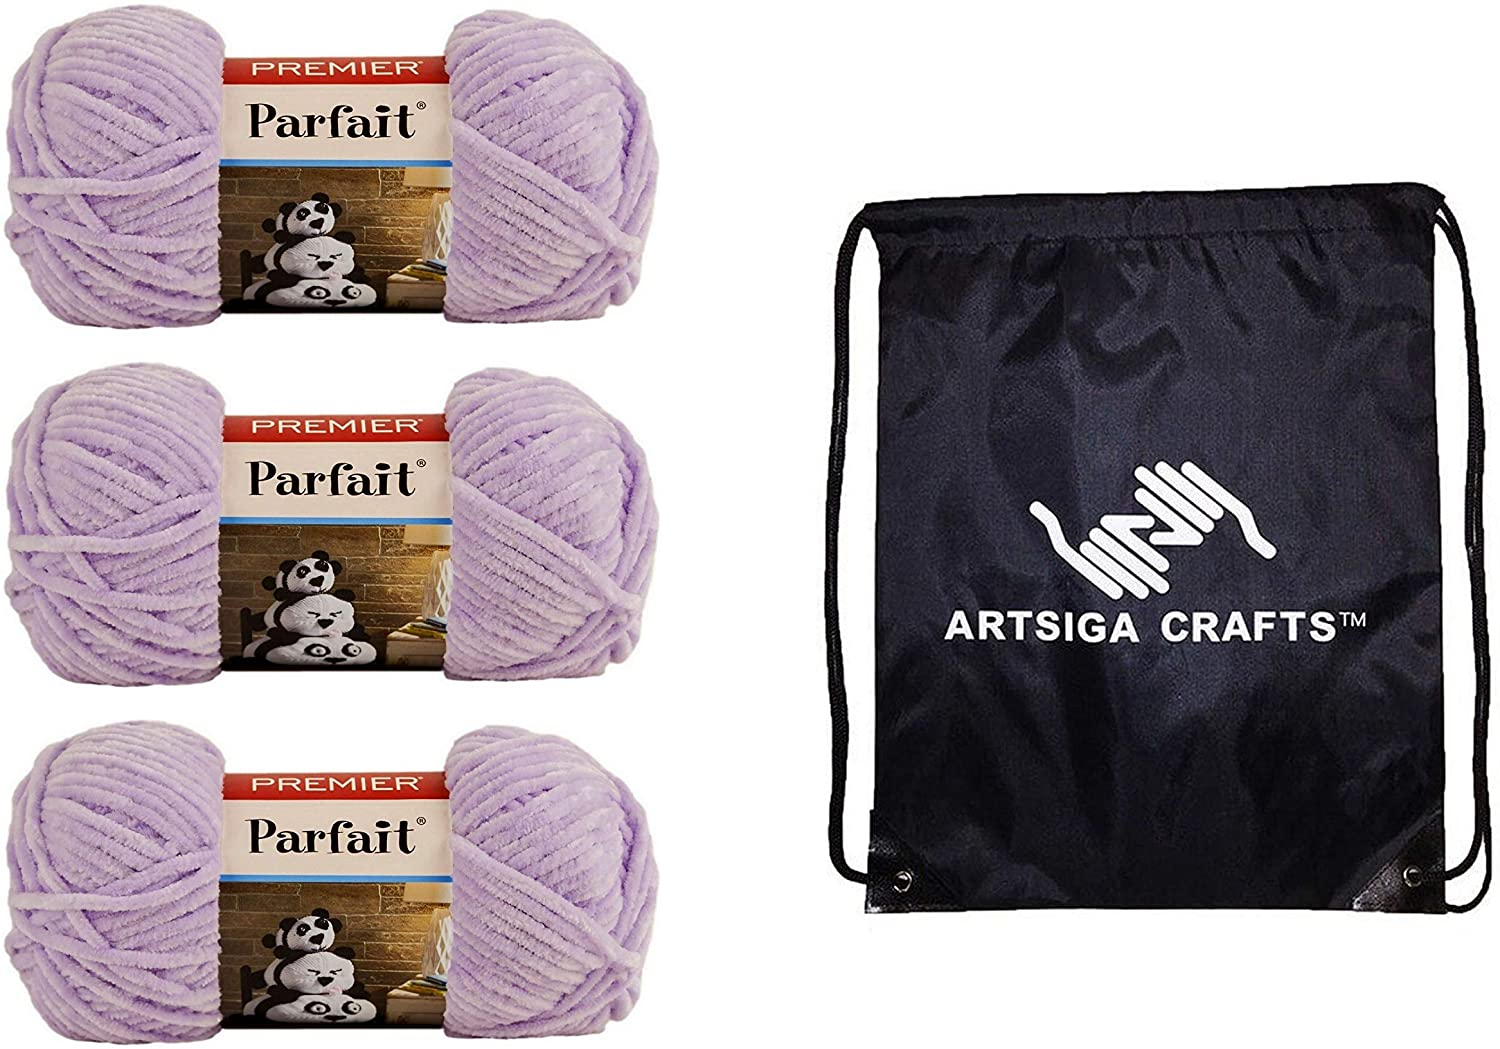 Premier Knitting Yarn Parfait Solid Lilac 3-Skein Factory Pack (Same Dye Lot) 30-28 Bundle with 1 Artsiga Crafts Project Bag